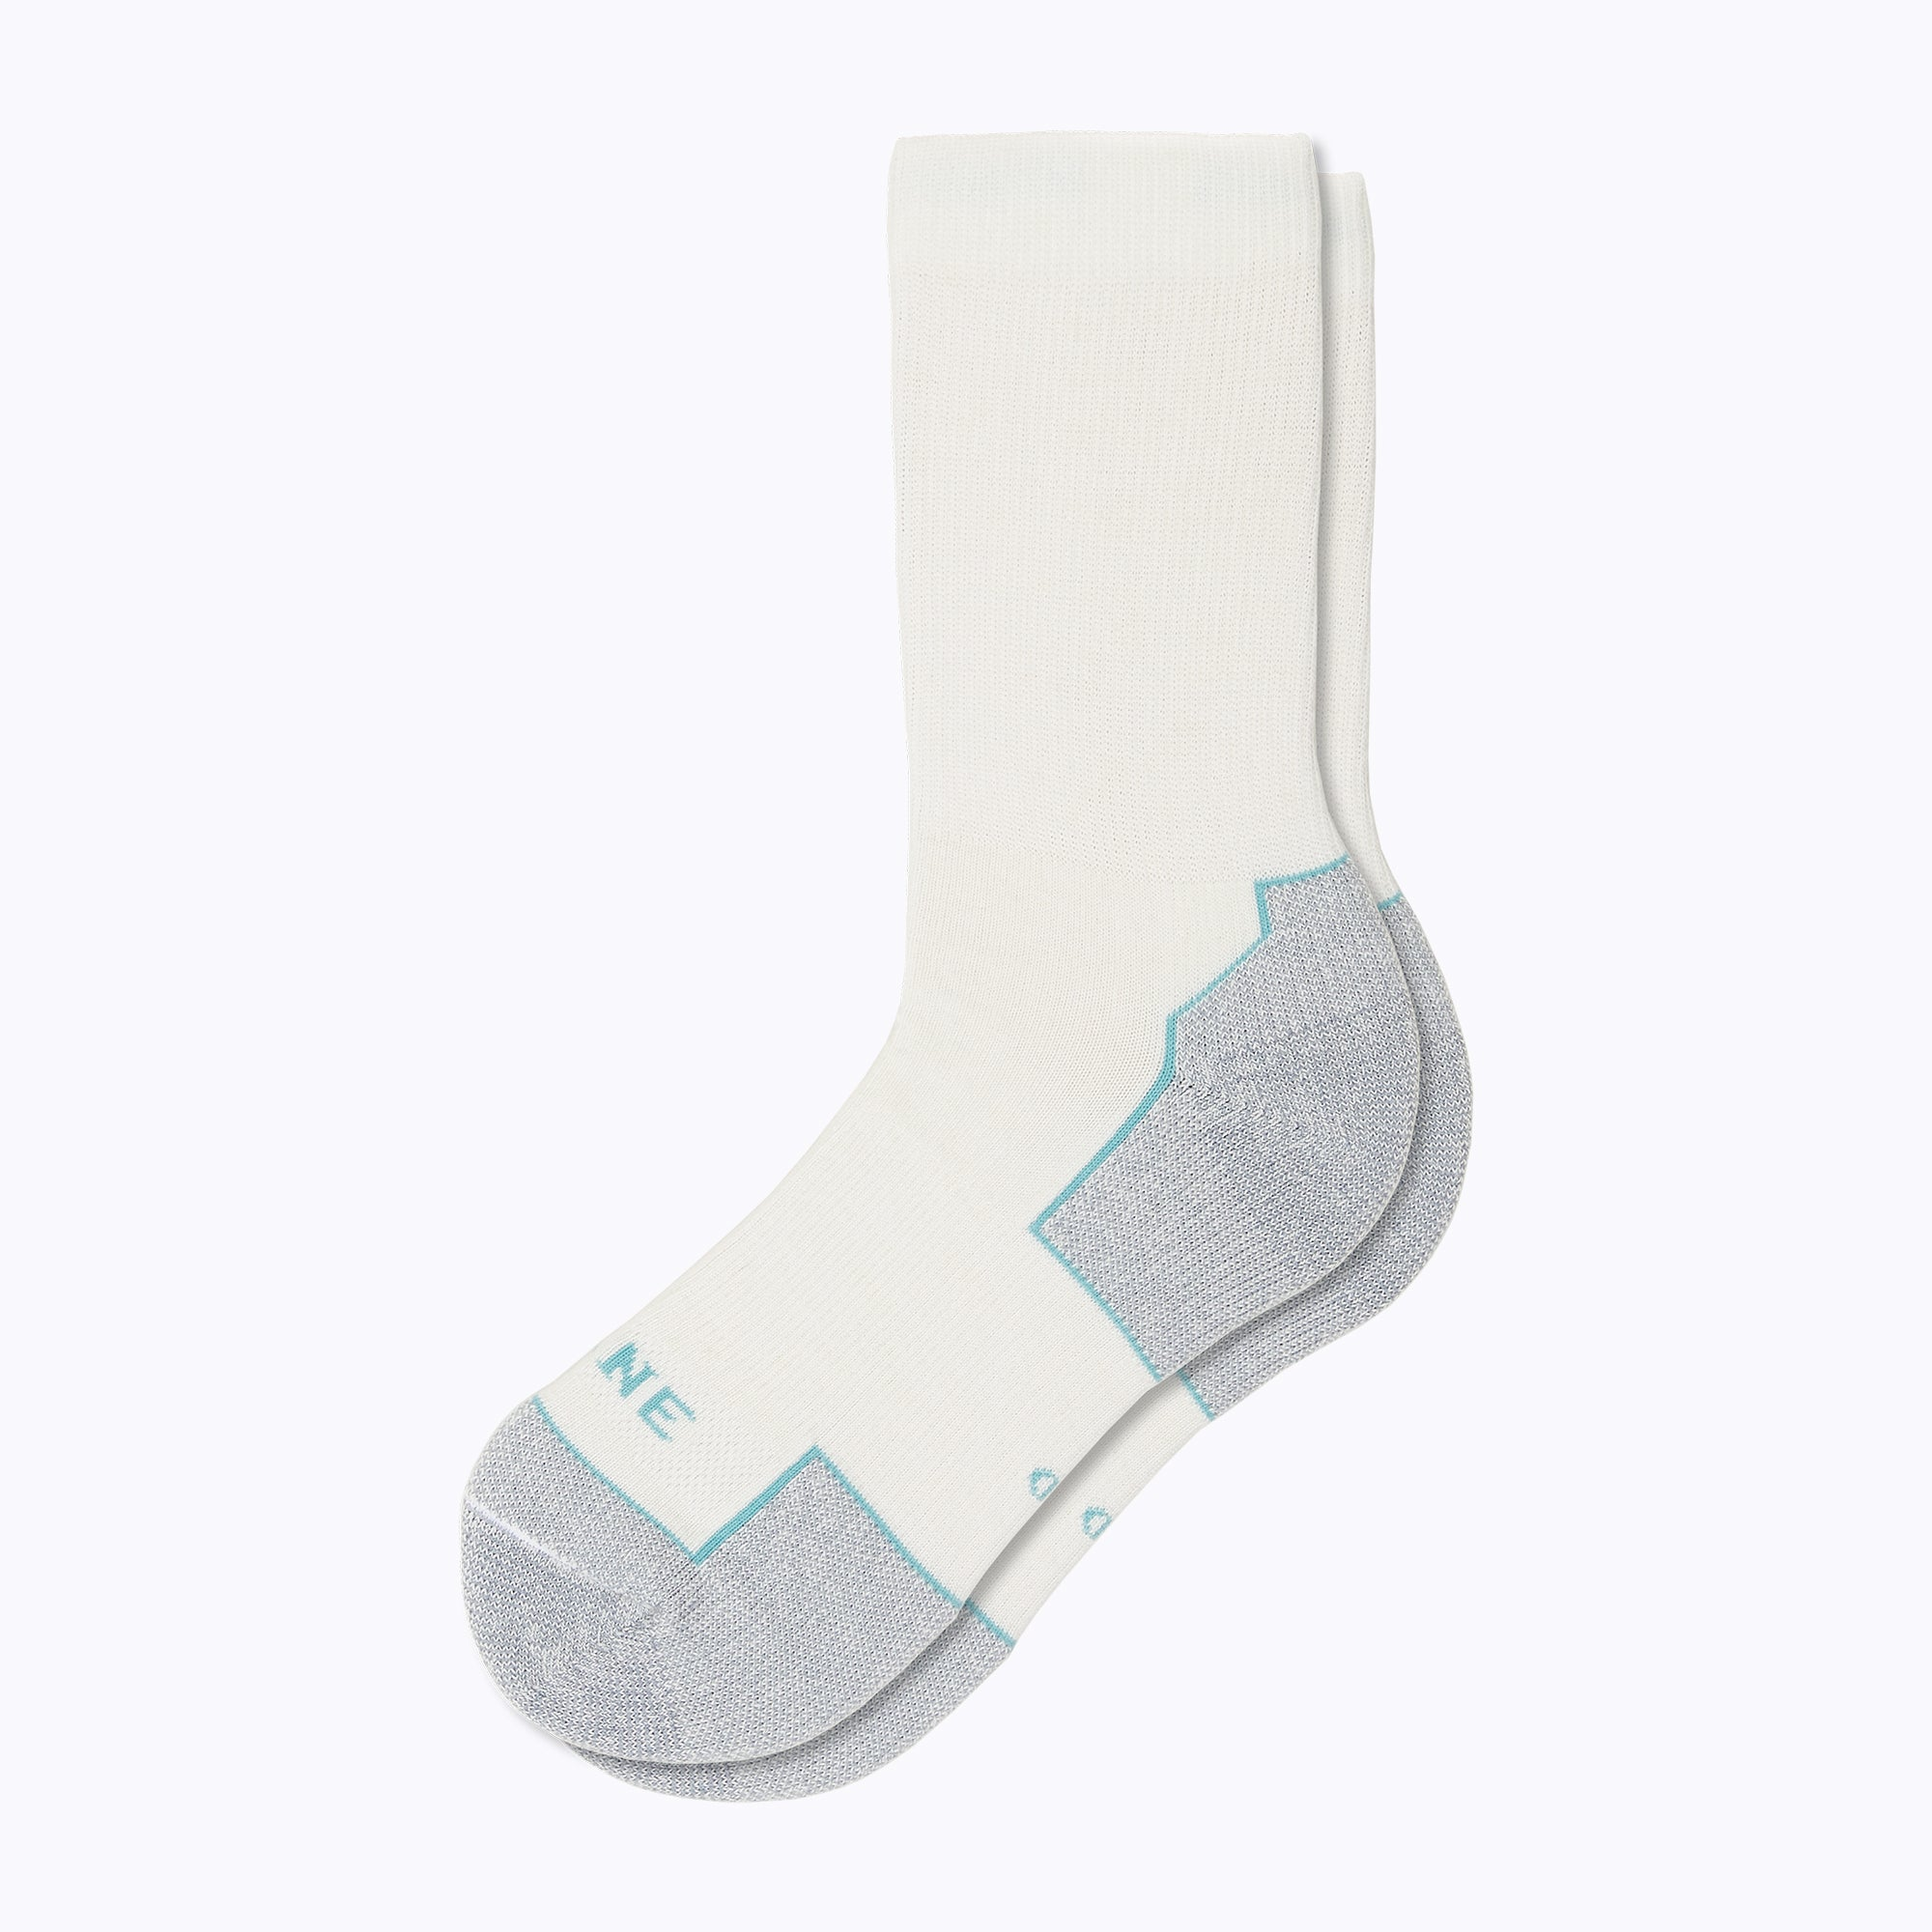 Everyday Women's Crew Socks - White by Canyon x Lane Socks